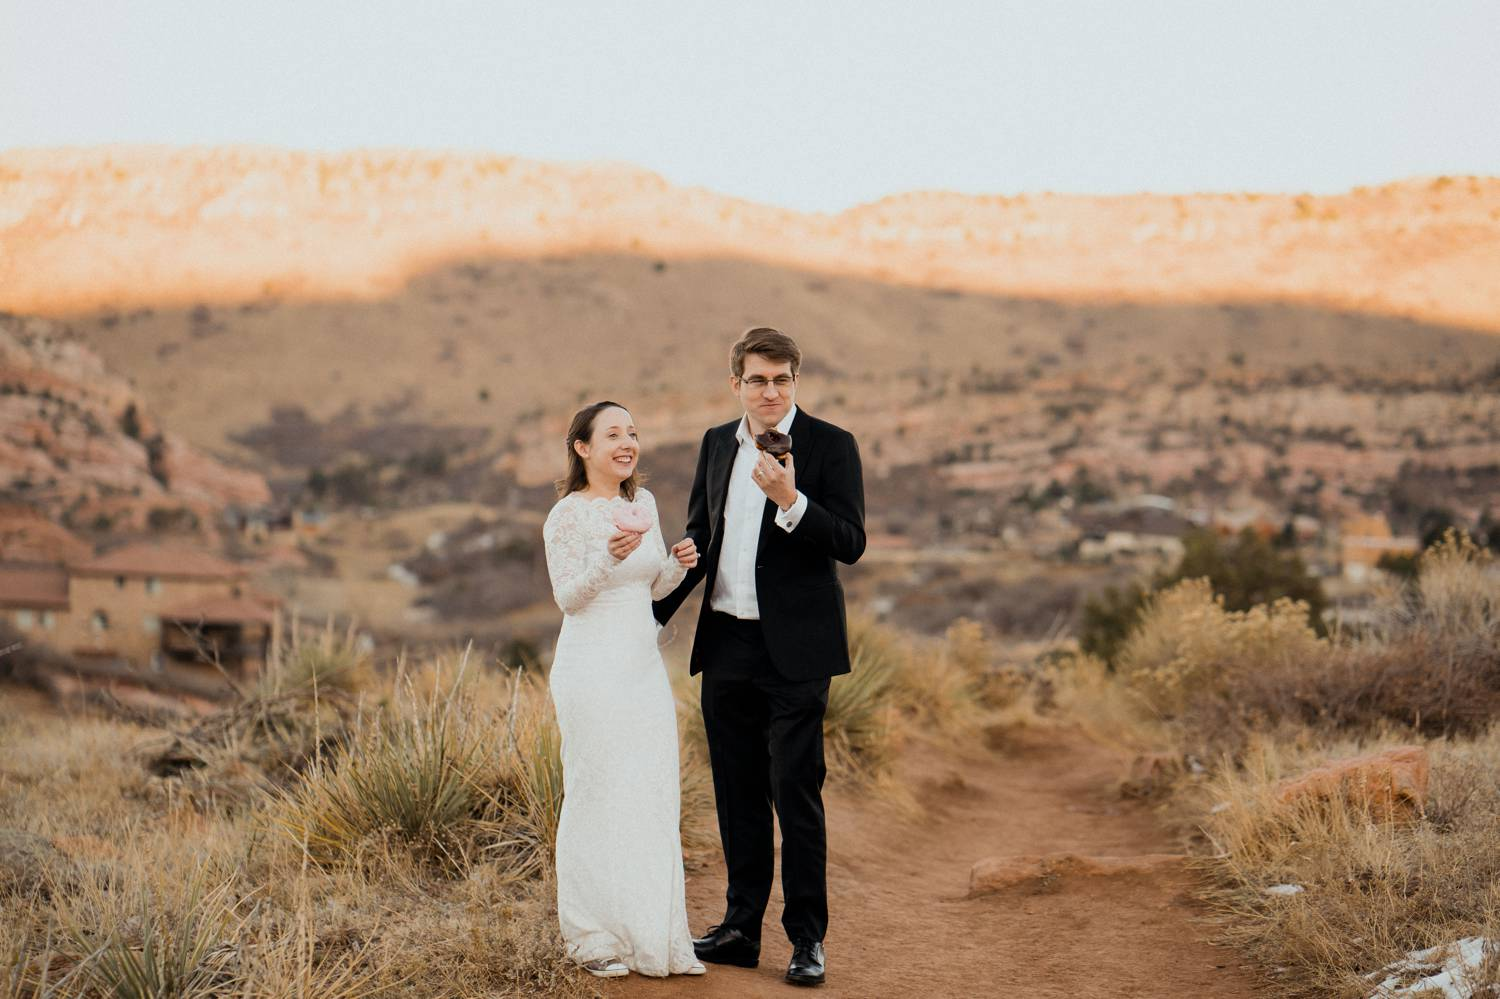 Customer Loyalty: By Nick Sparks, a bride and groom eat doughnuts in the mountains of Colorado.